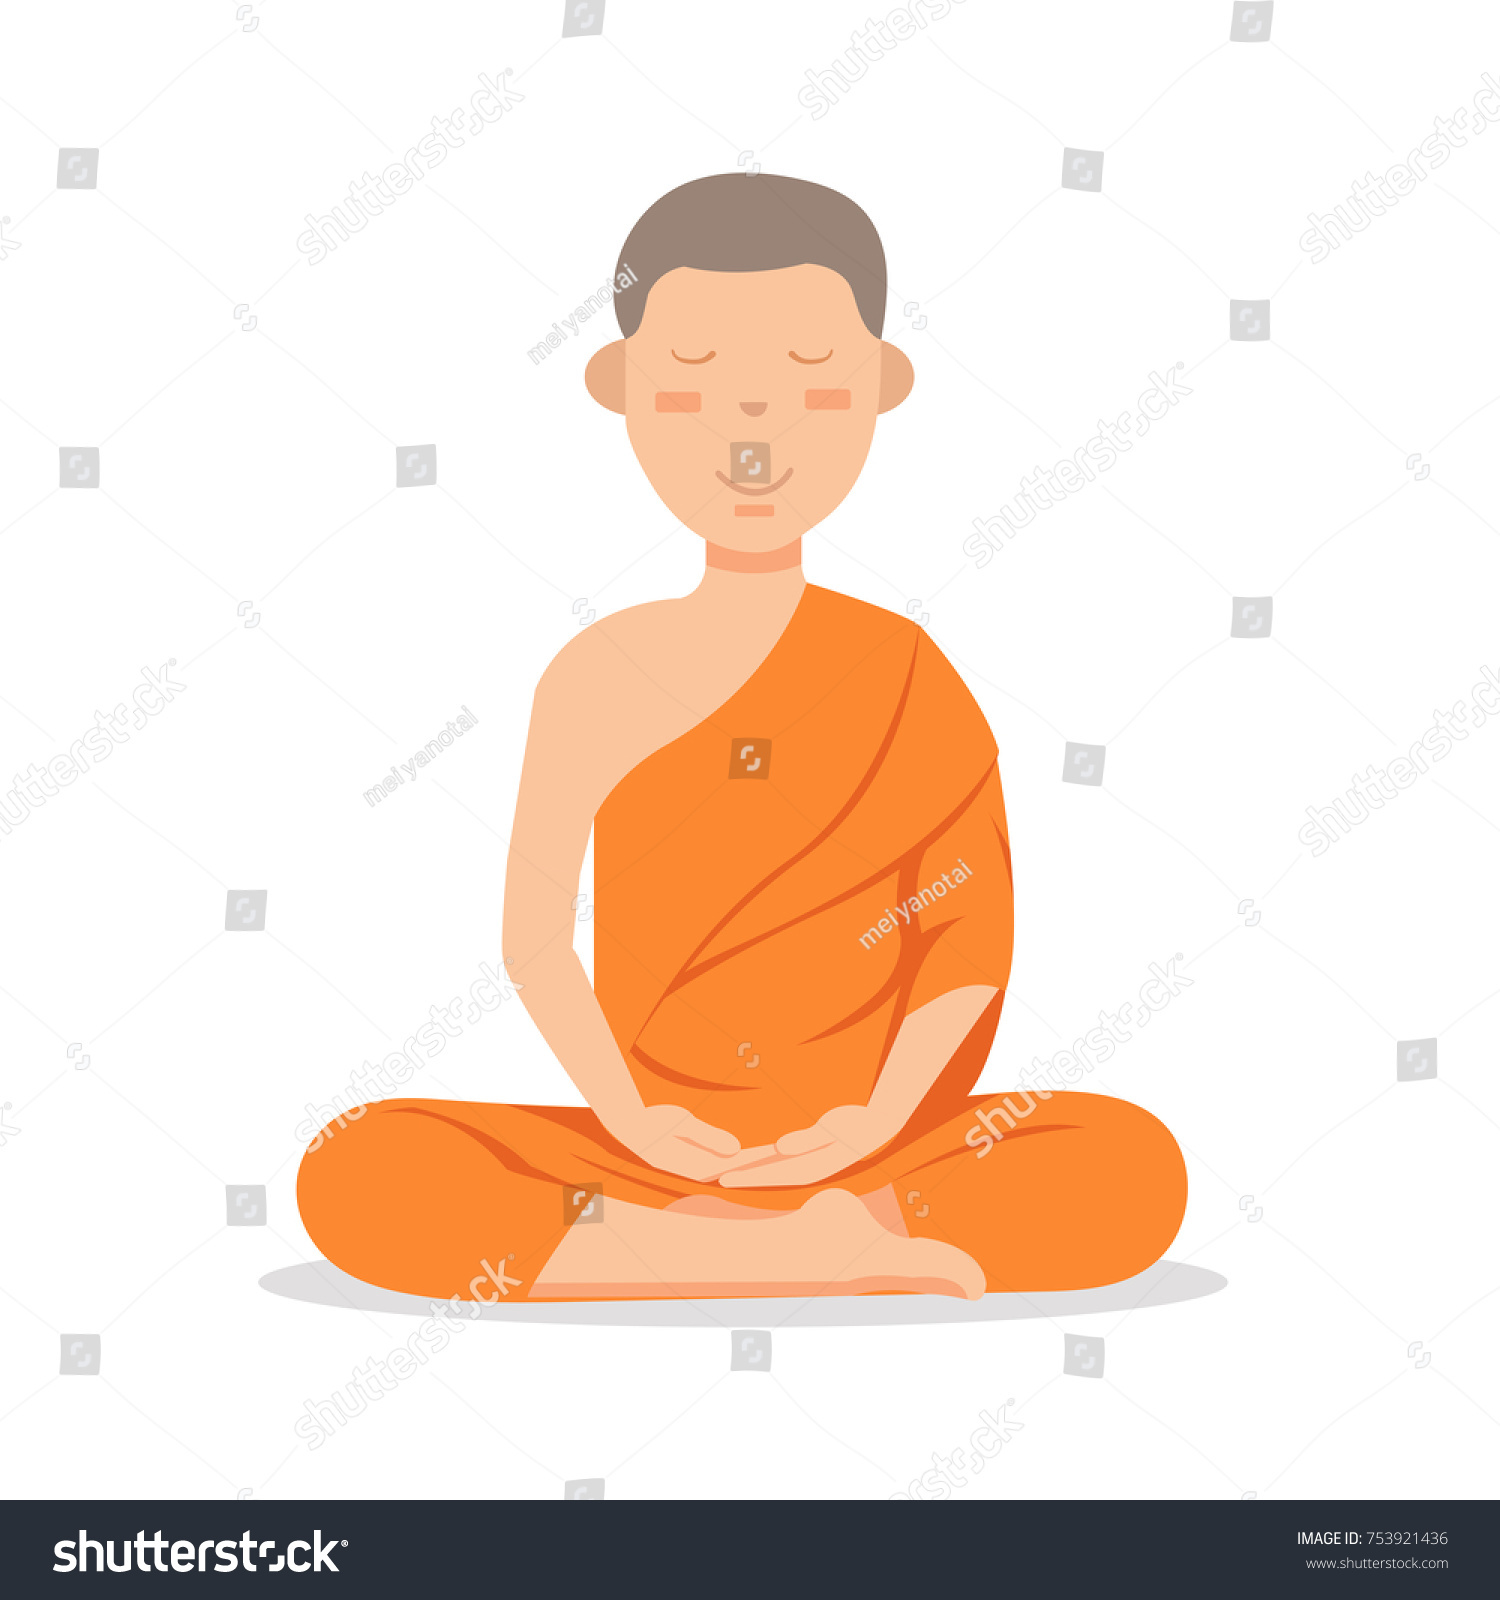 Buddhist Monk Orange Robes Sitting Meditation Stock Vector 753921436